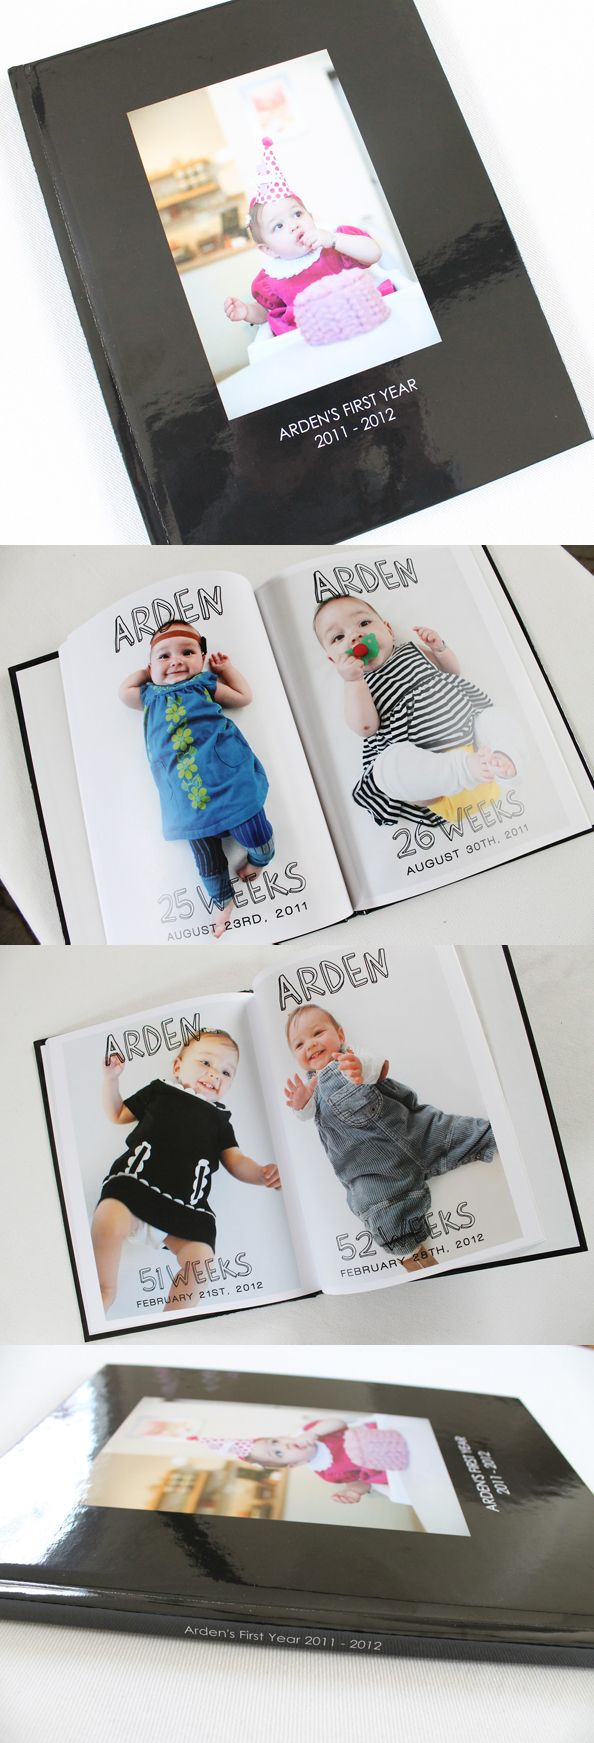 Photo Book Idea: Document one big, beautiful baby photo every week for a year to commemorate the life of a brand-new baby.